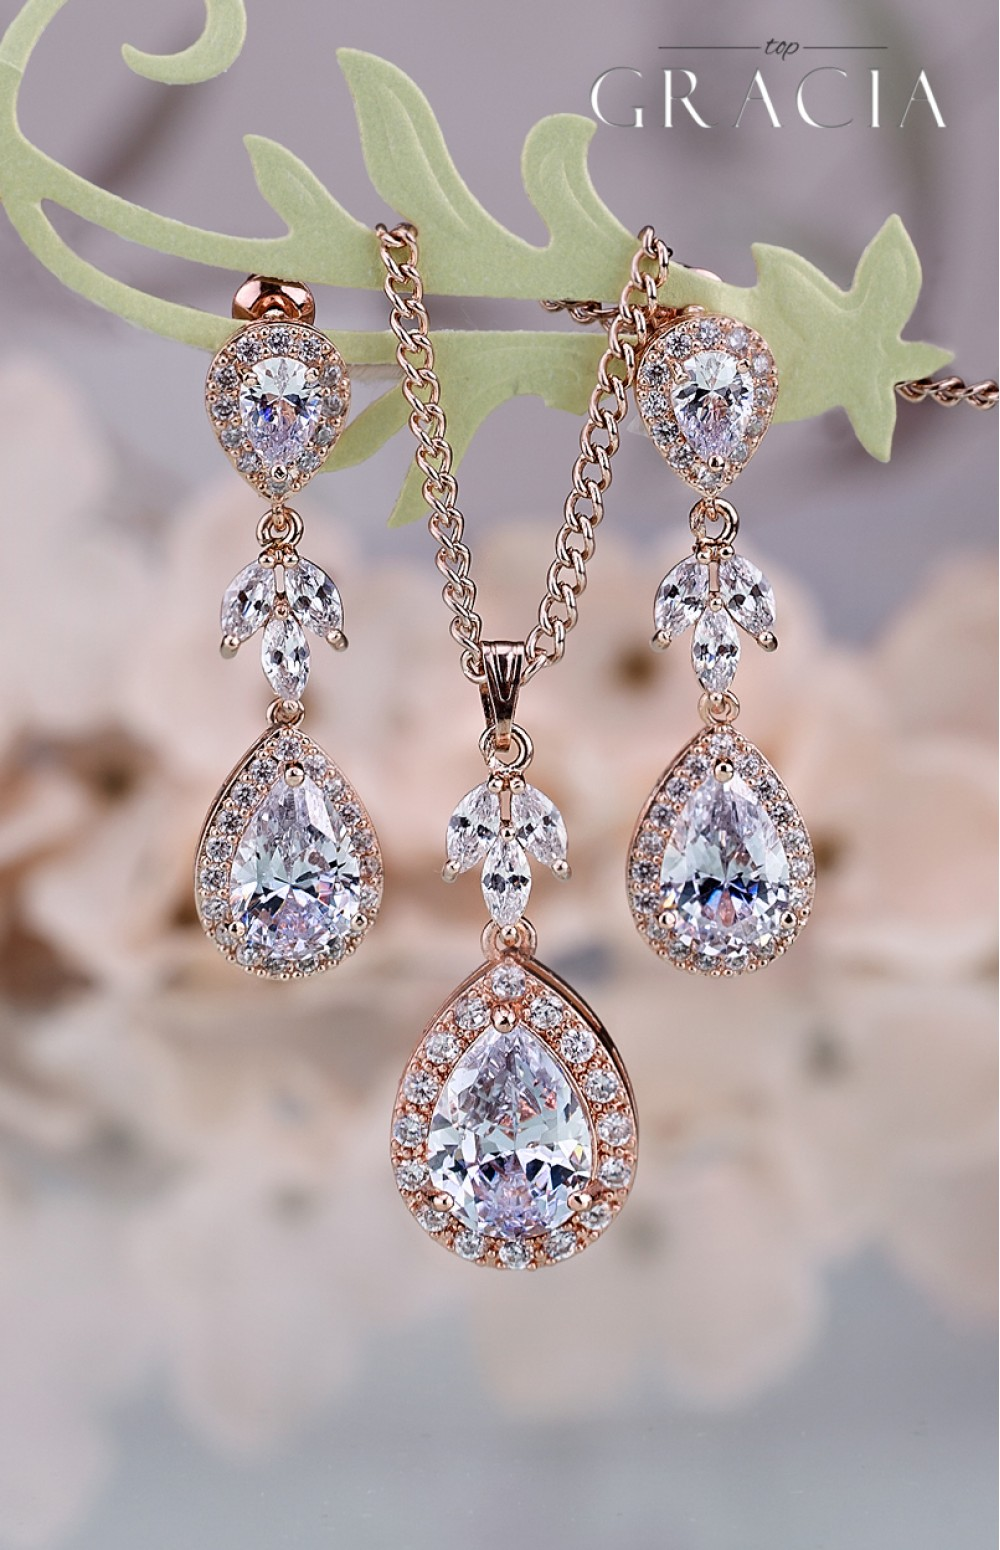 maid of honor bridesmaid jewelry Bridal backdrop necklace Wedding jewelry wedding necklace earrings Champagne crystal bridal jewelry set